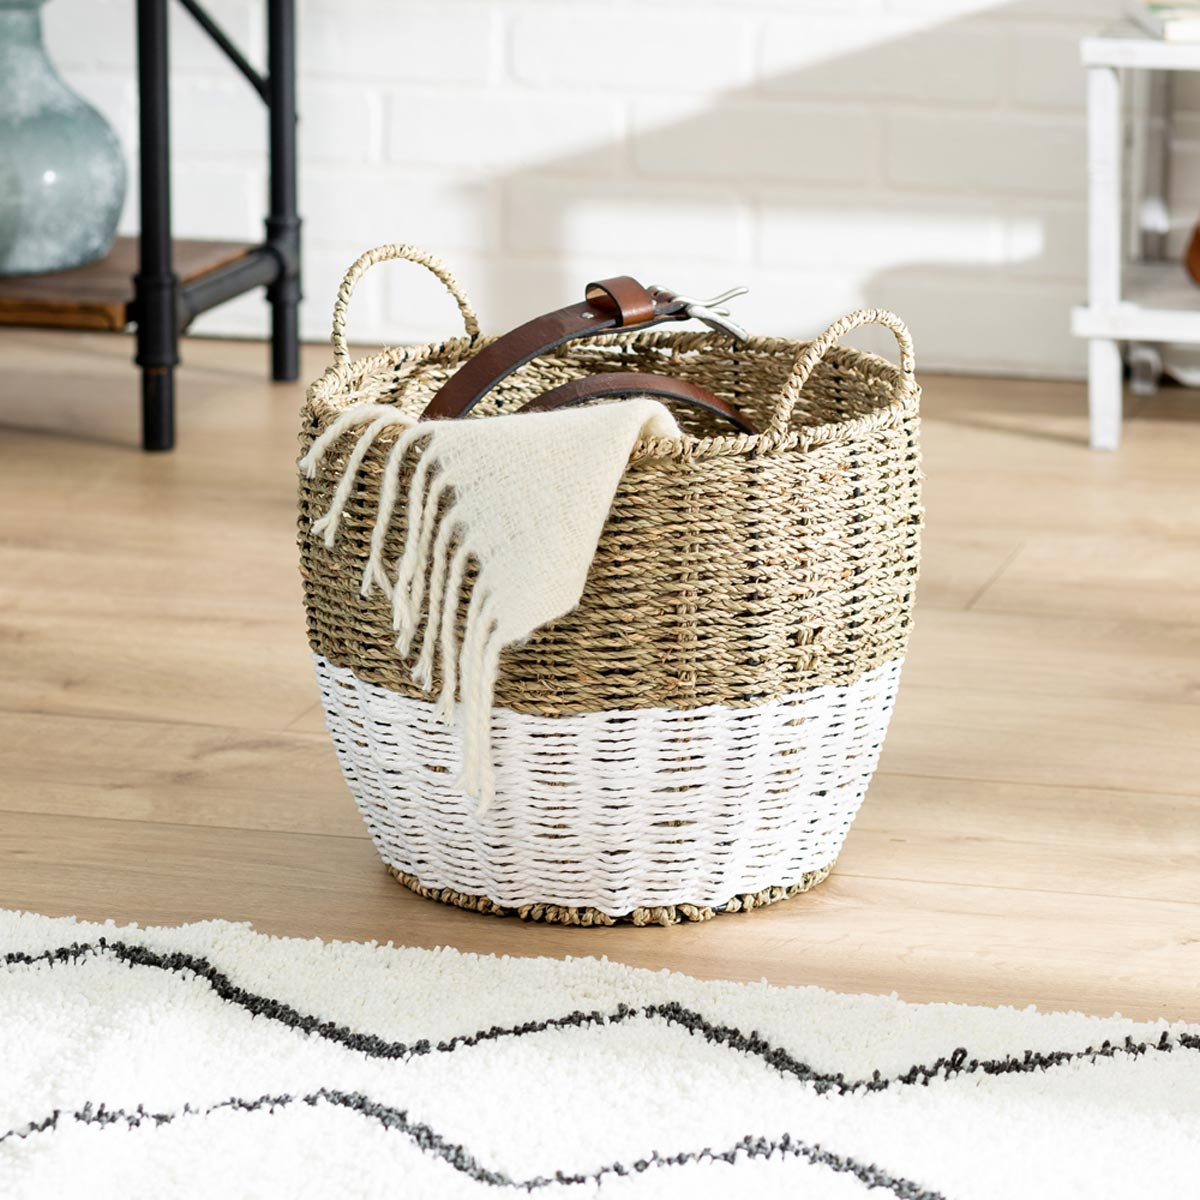 12 in. x 10 in. Natural/White Seagrass Round Storage Basket with Handles, Small